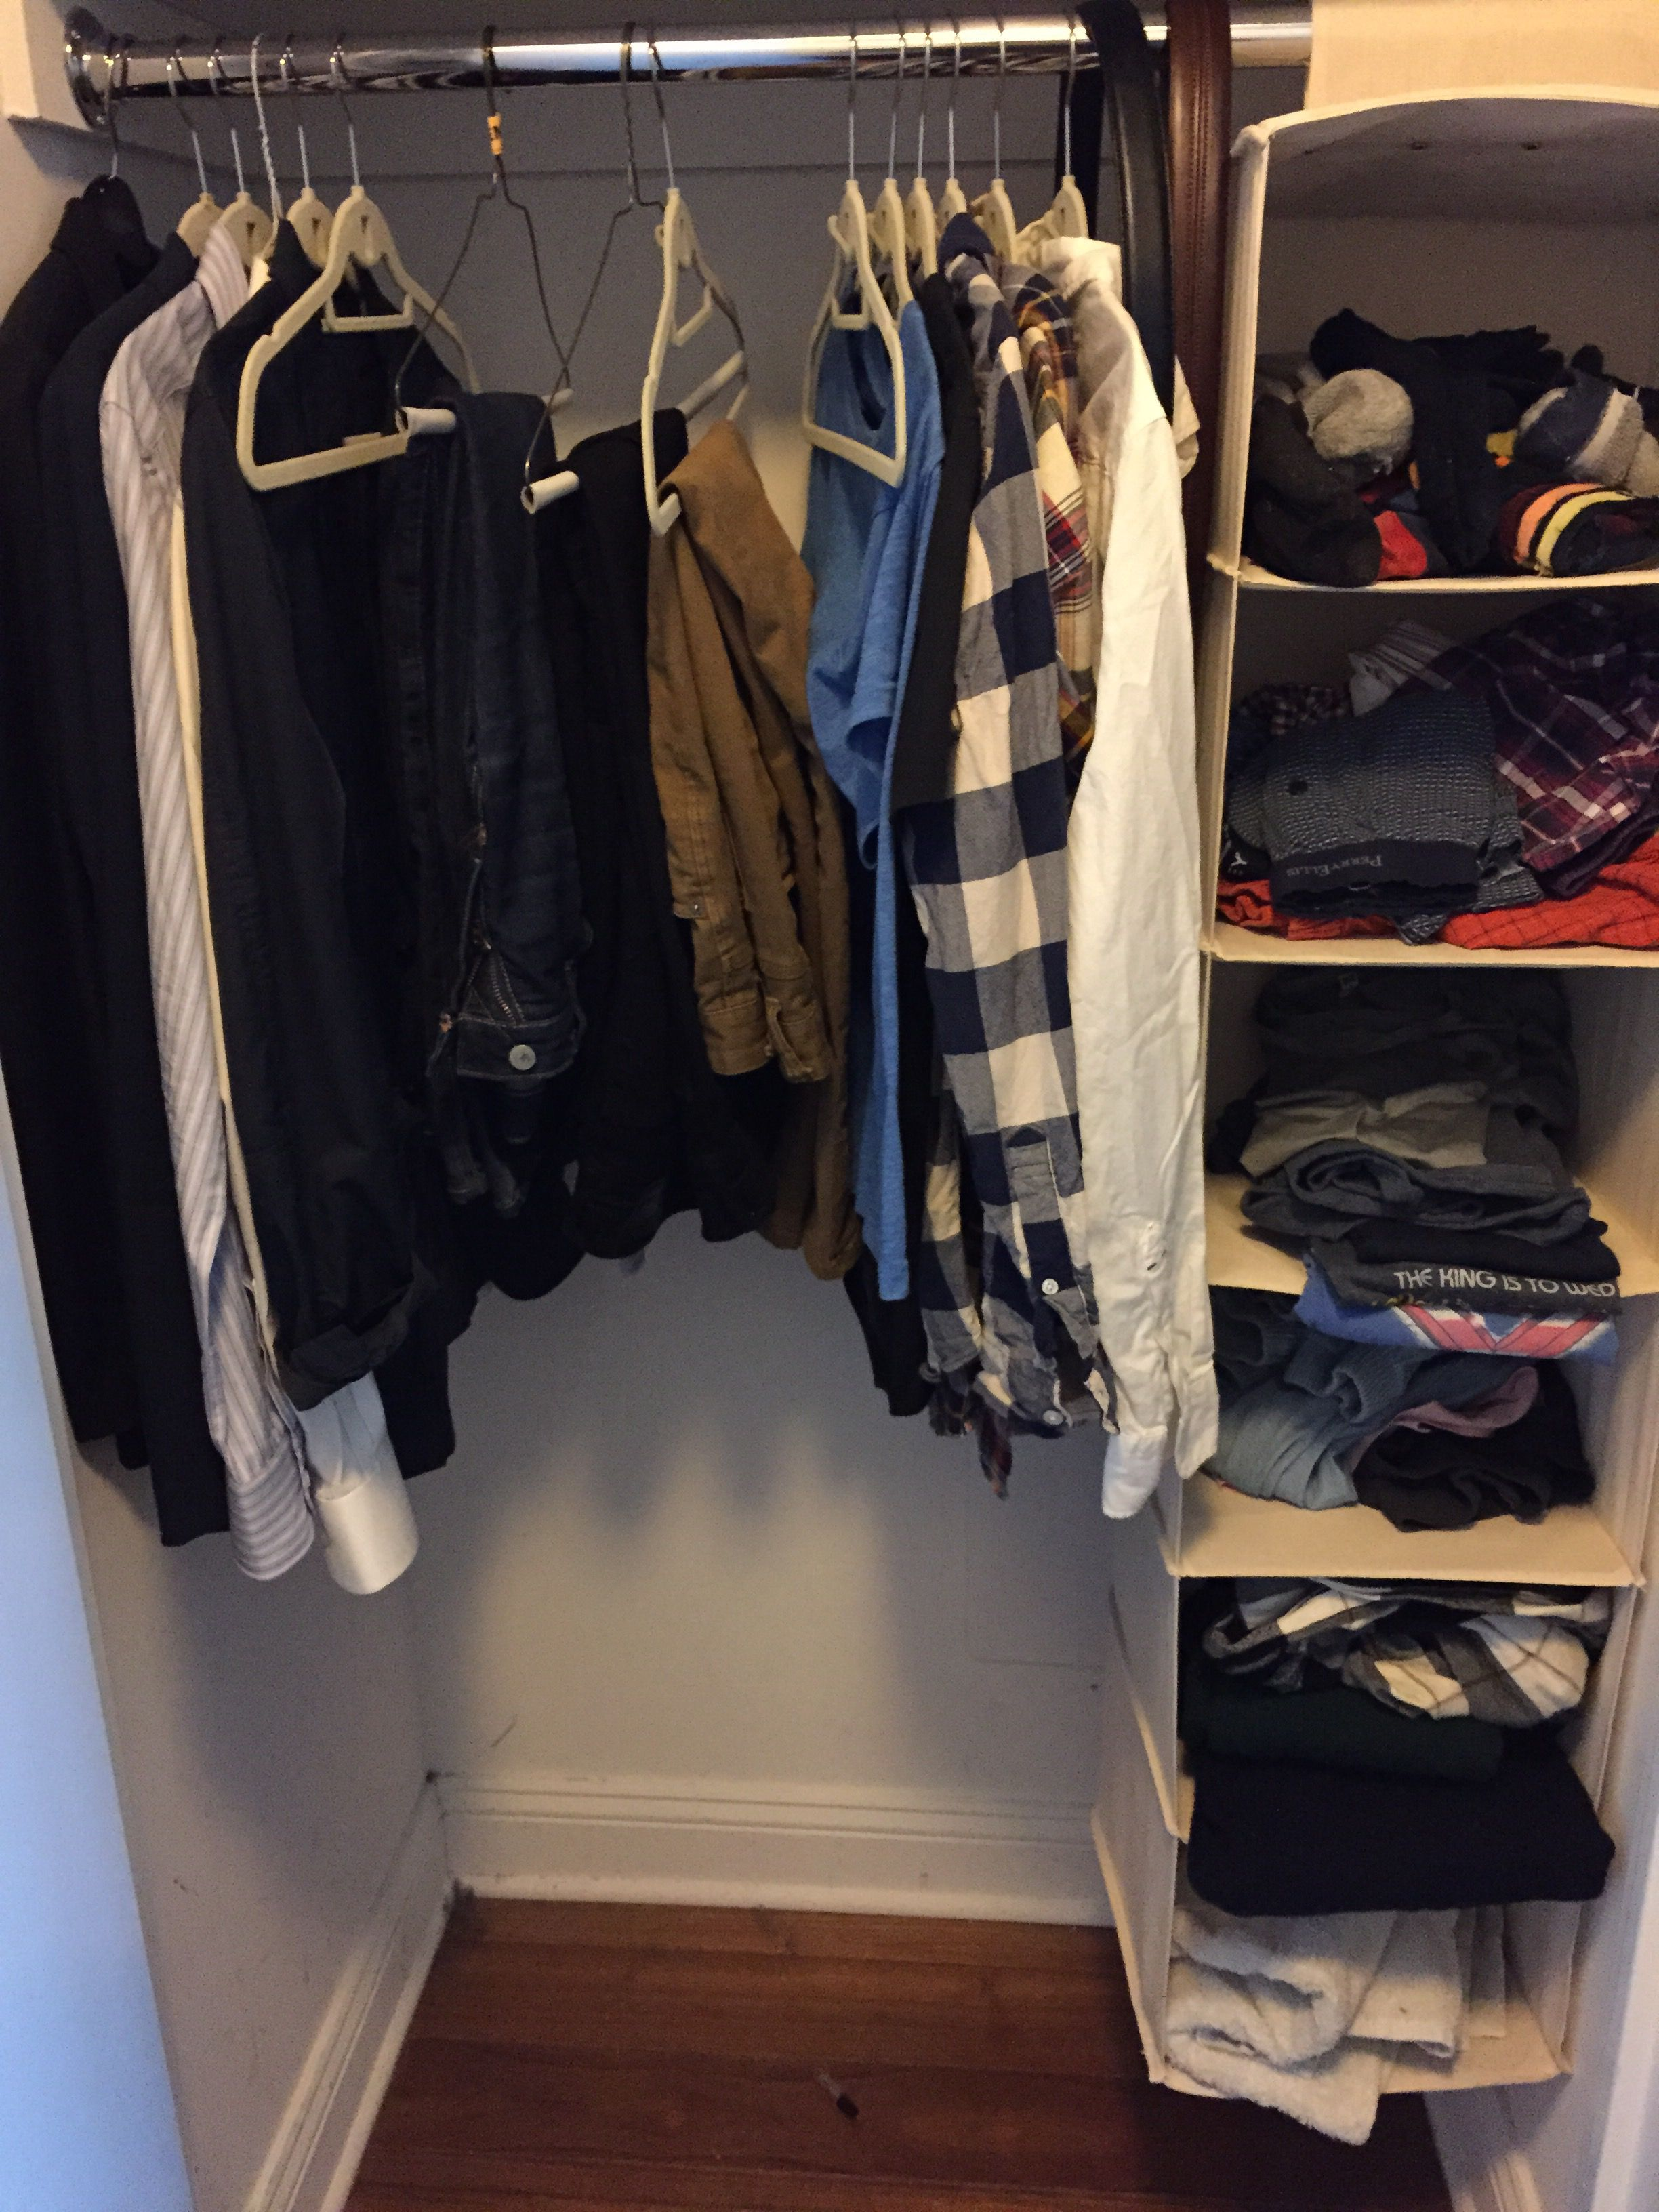 My wardrobe minimized